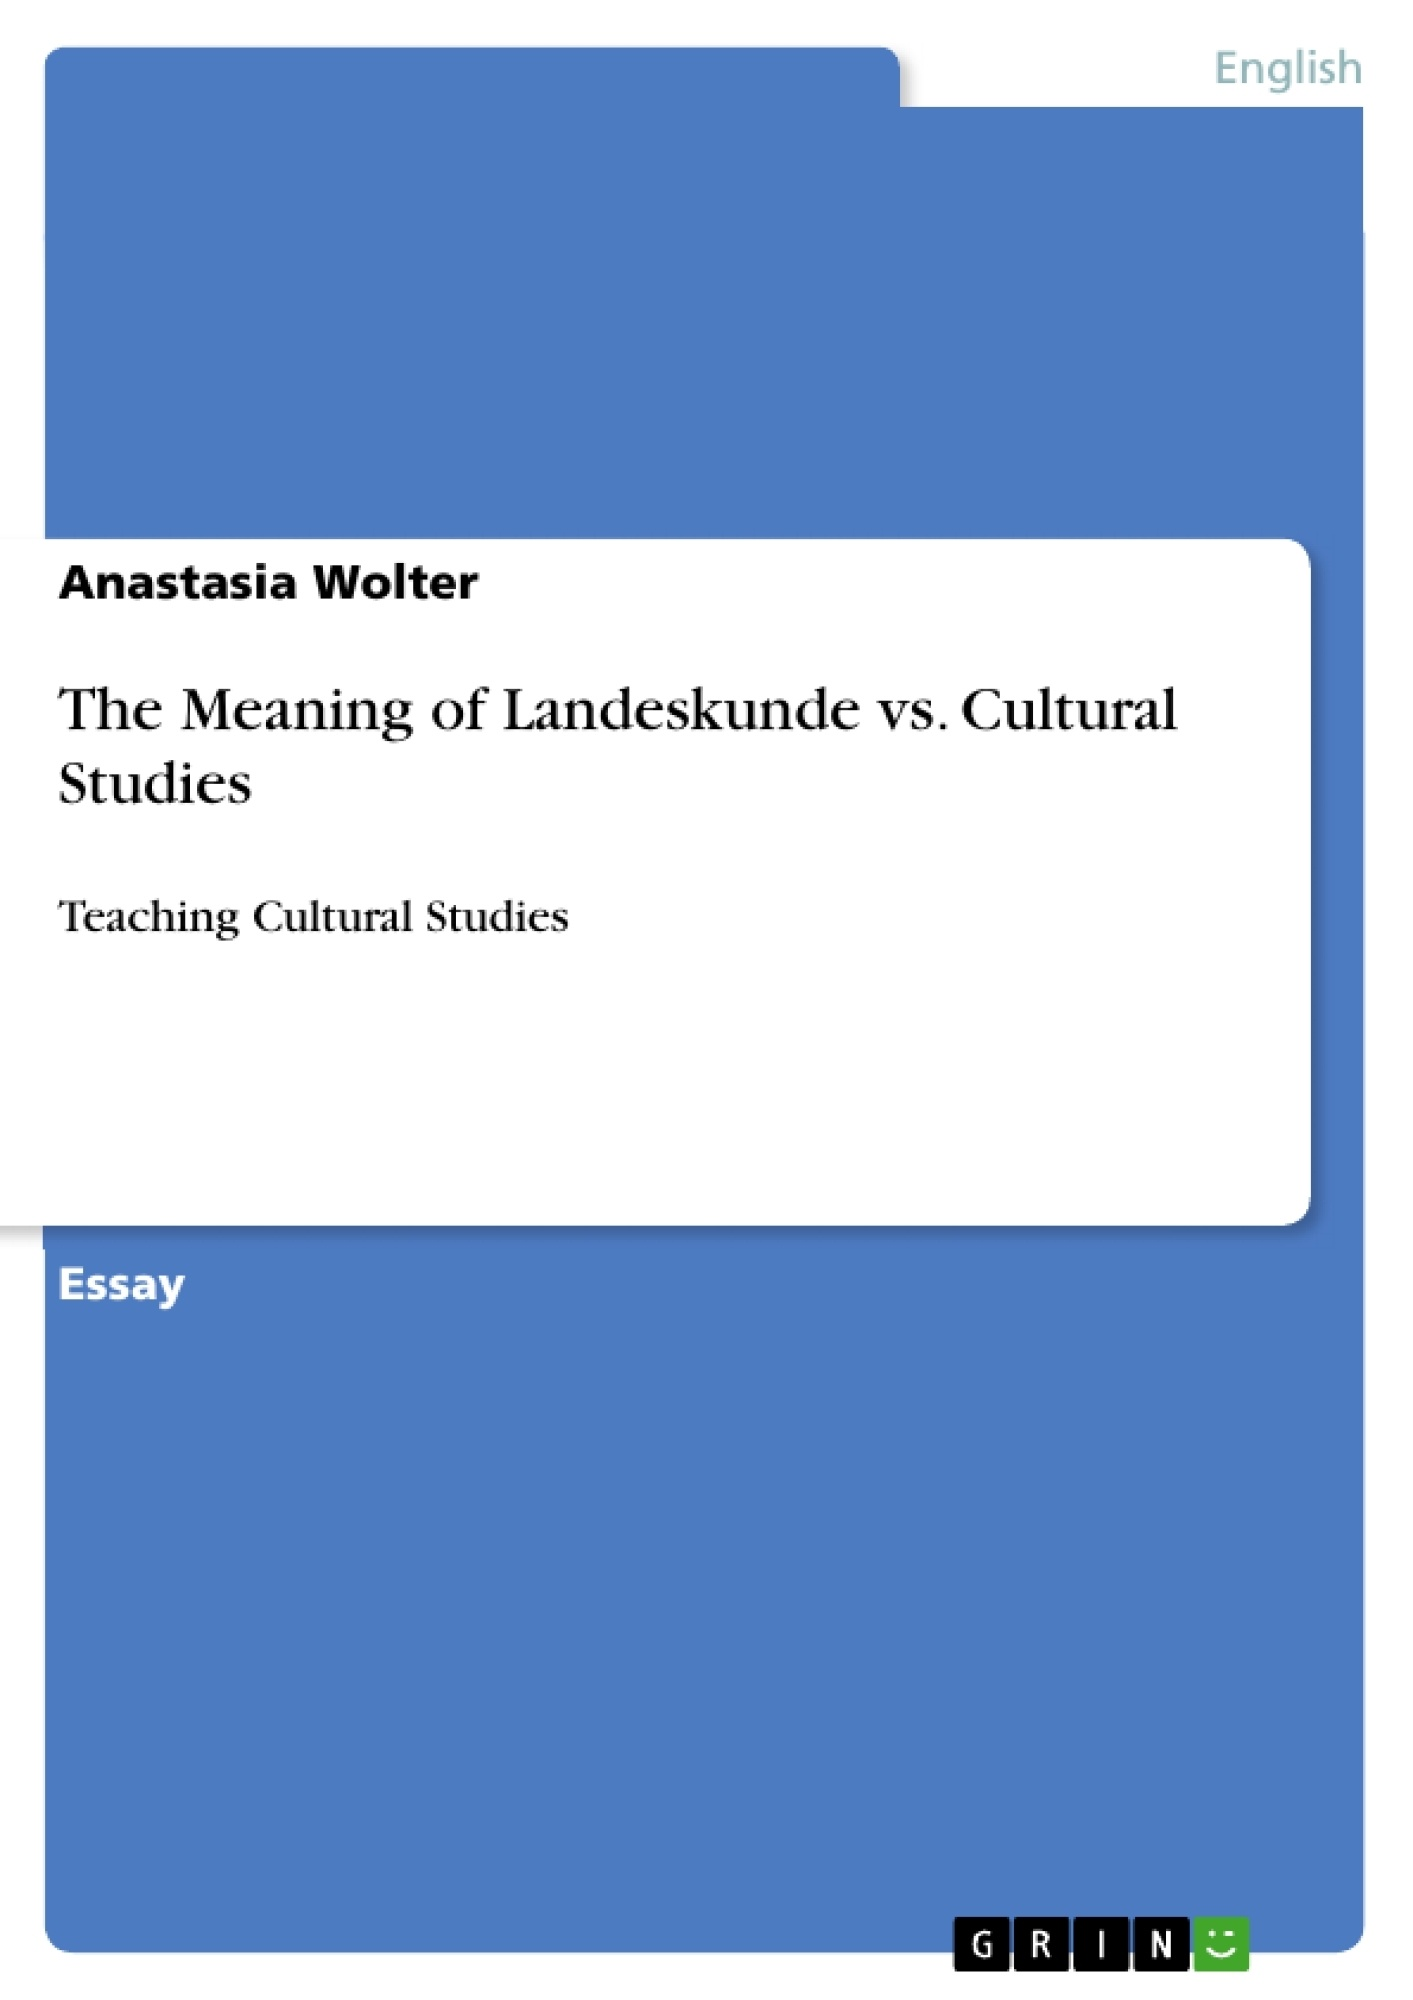 the meaning of landeskunde vs cultural studies publish your  upload your own papers earn money and win an iphone x